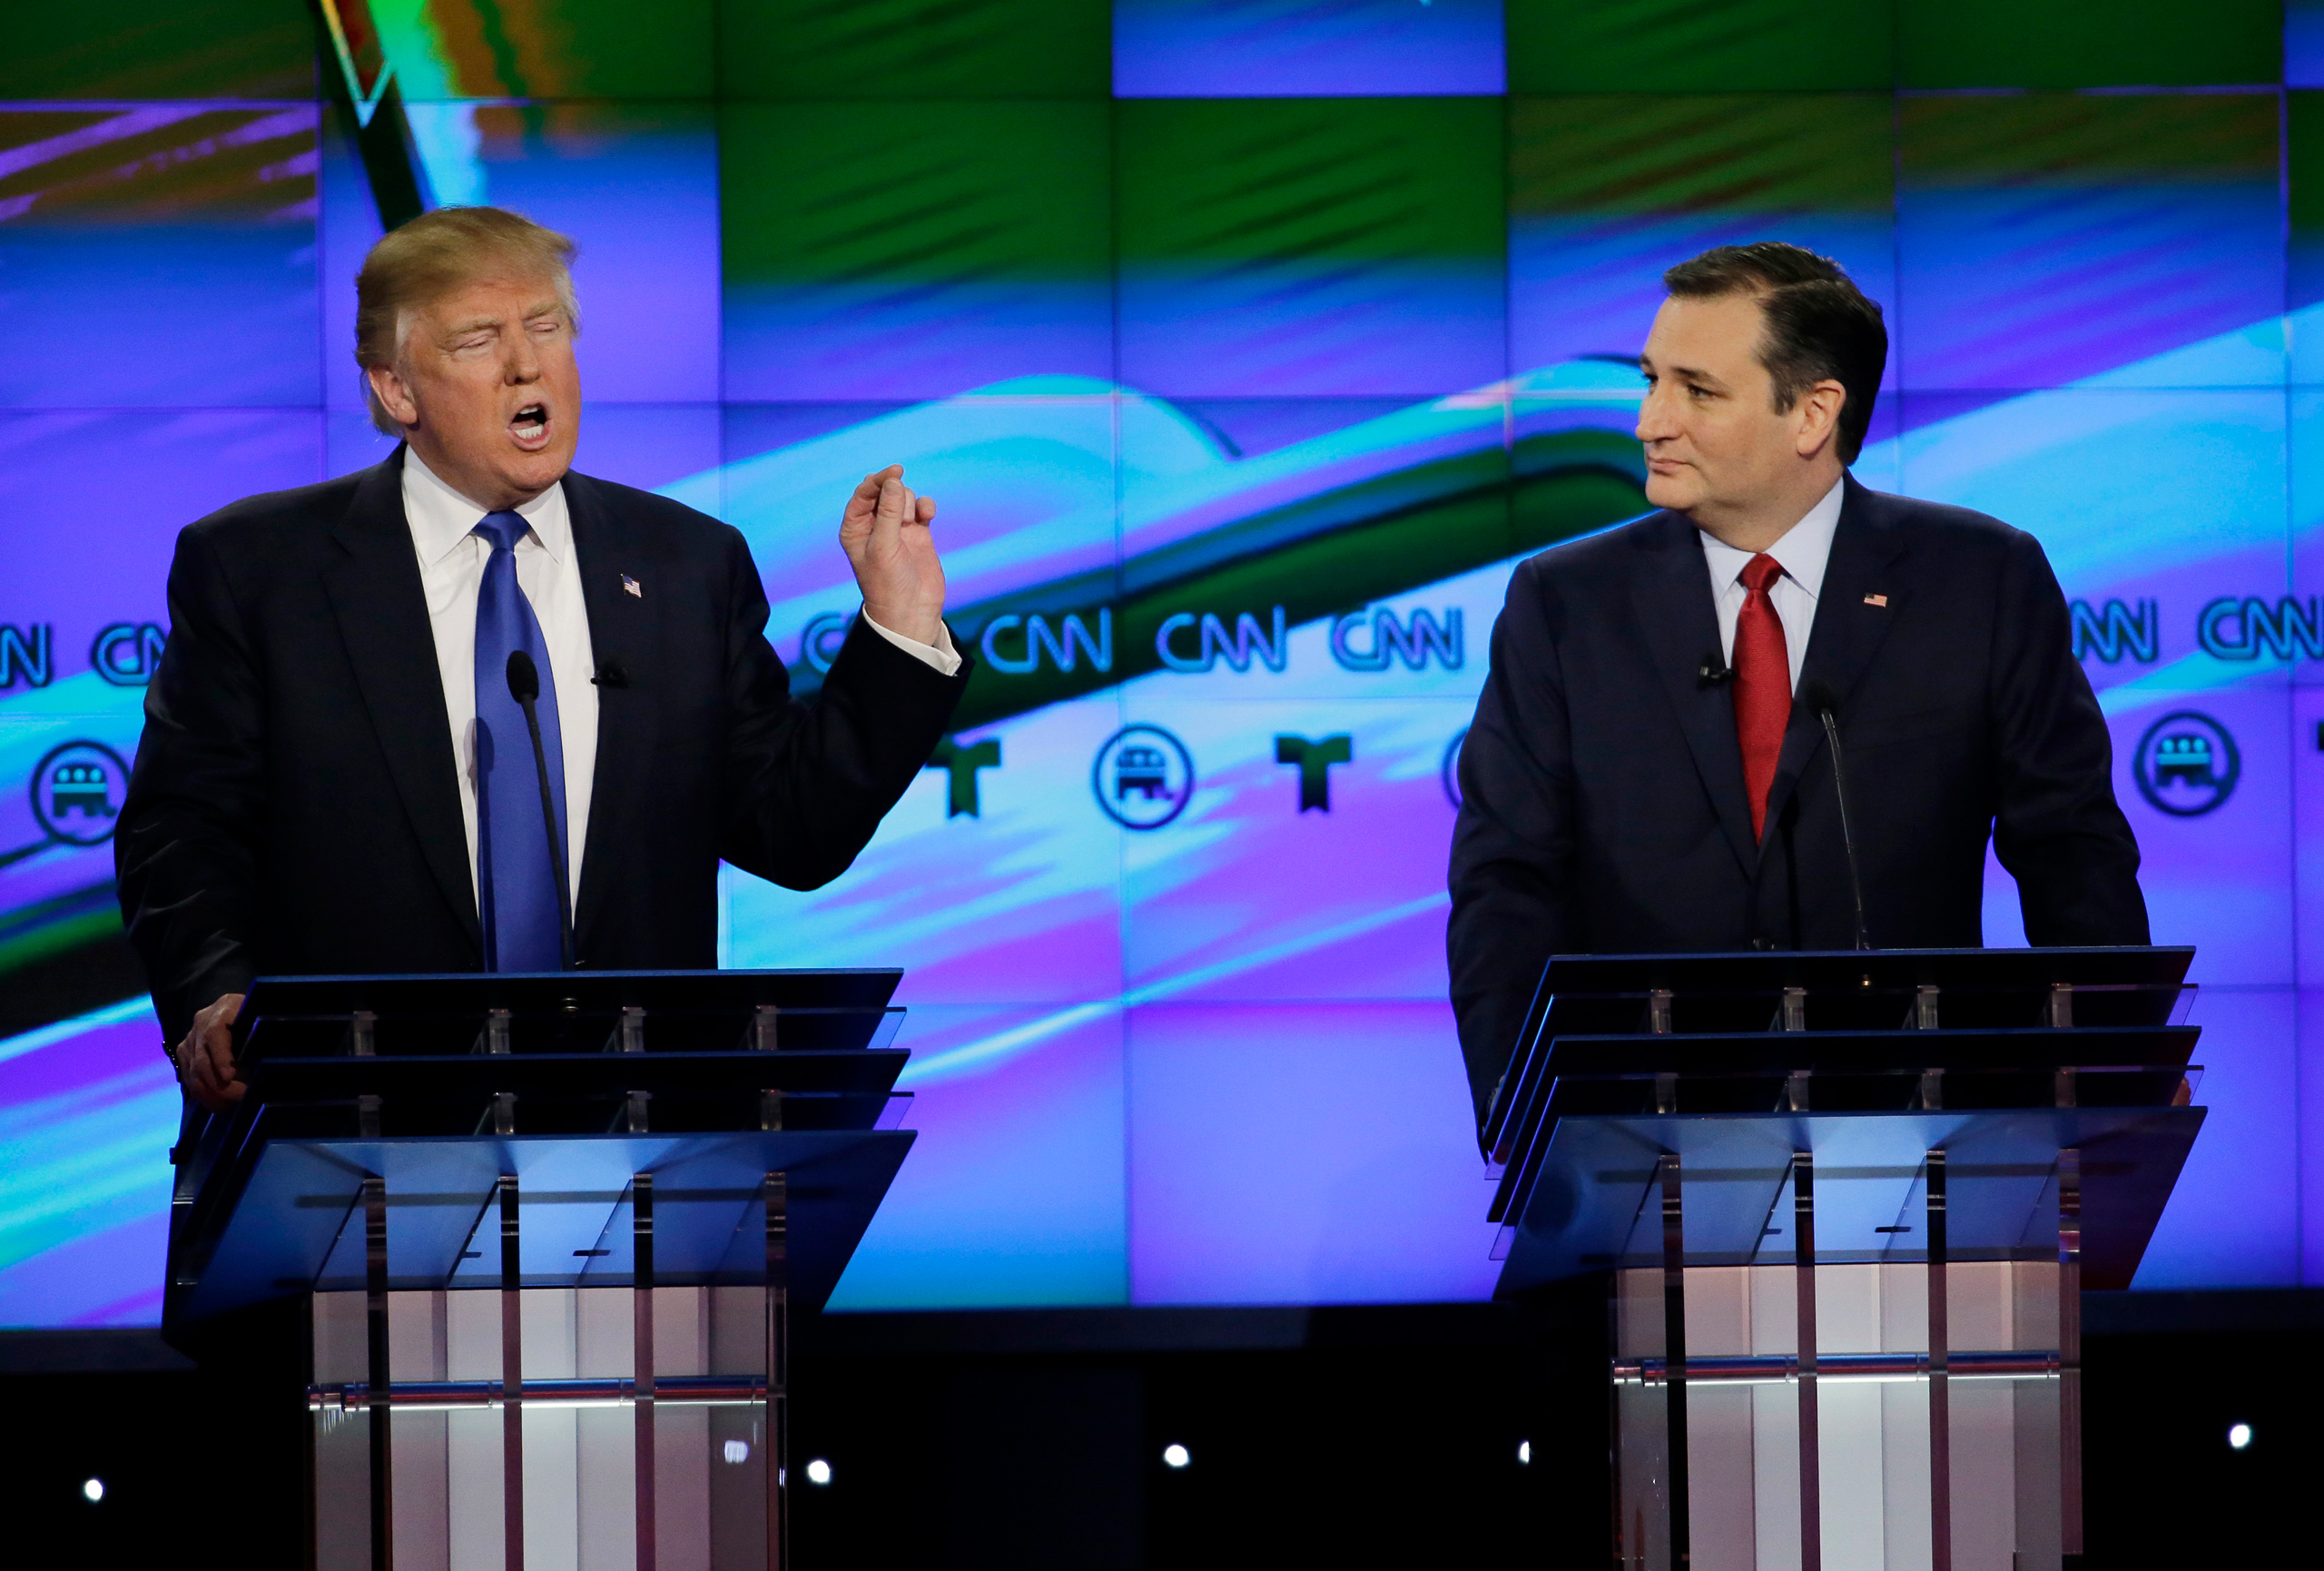 Sen. Ted Cruz, R-Texas listen as Donald Trump speaks during a Republican presidential primary debate at The University of Houston in Houston on Feb. 25, 2016.